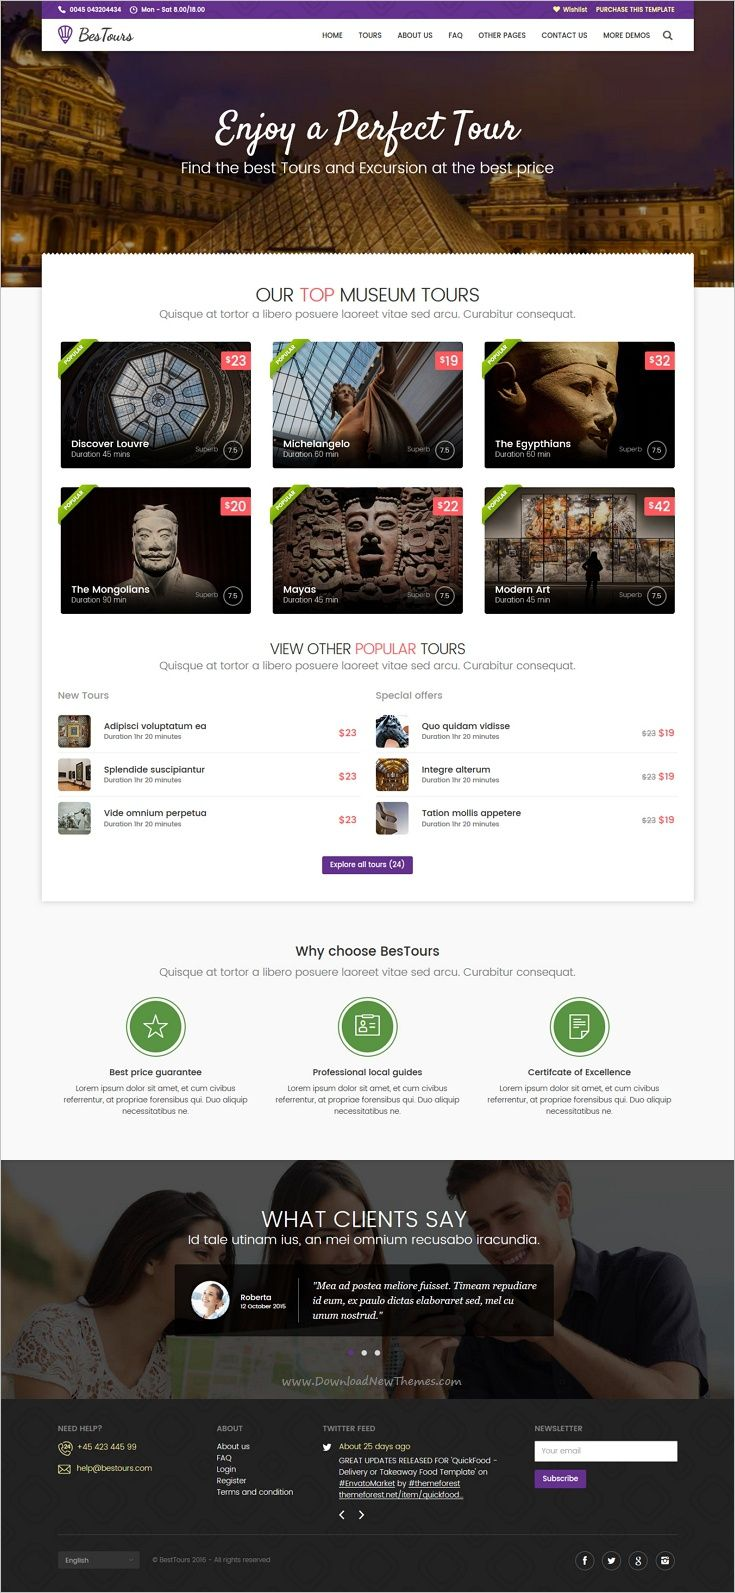 BESTOURS is a clean and modern design responsive 4in1 #Bootstrap template for Tours, #Excursions and #Travel agencies website download now➩ https://themeforest.net/item/bestours-tours-excursions-and-travel-multipurpose-template/18956733?ref=Datasata